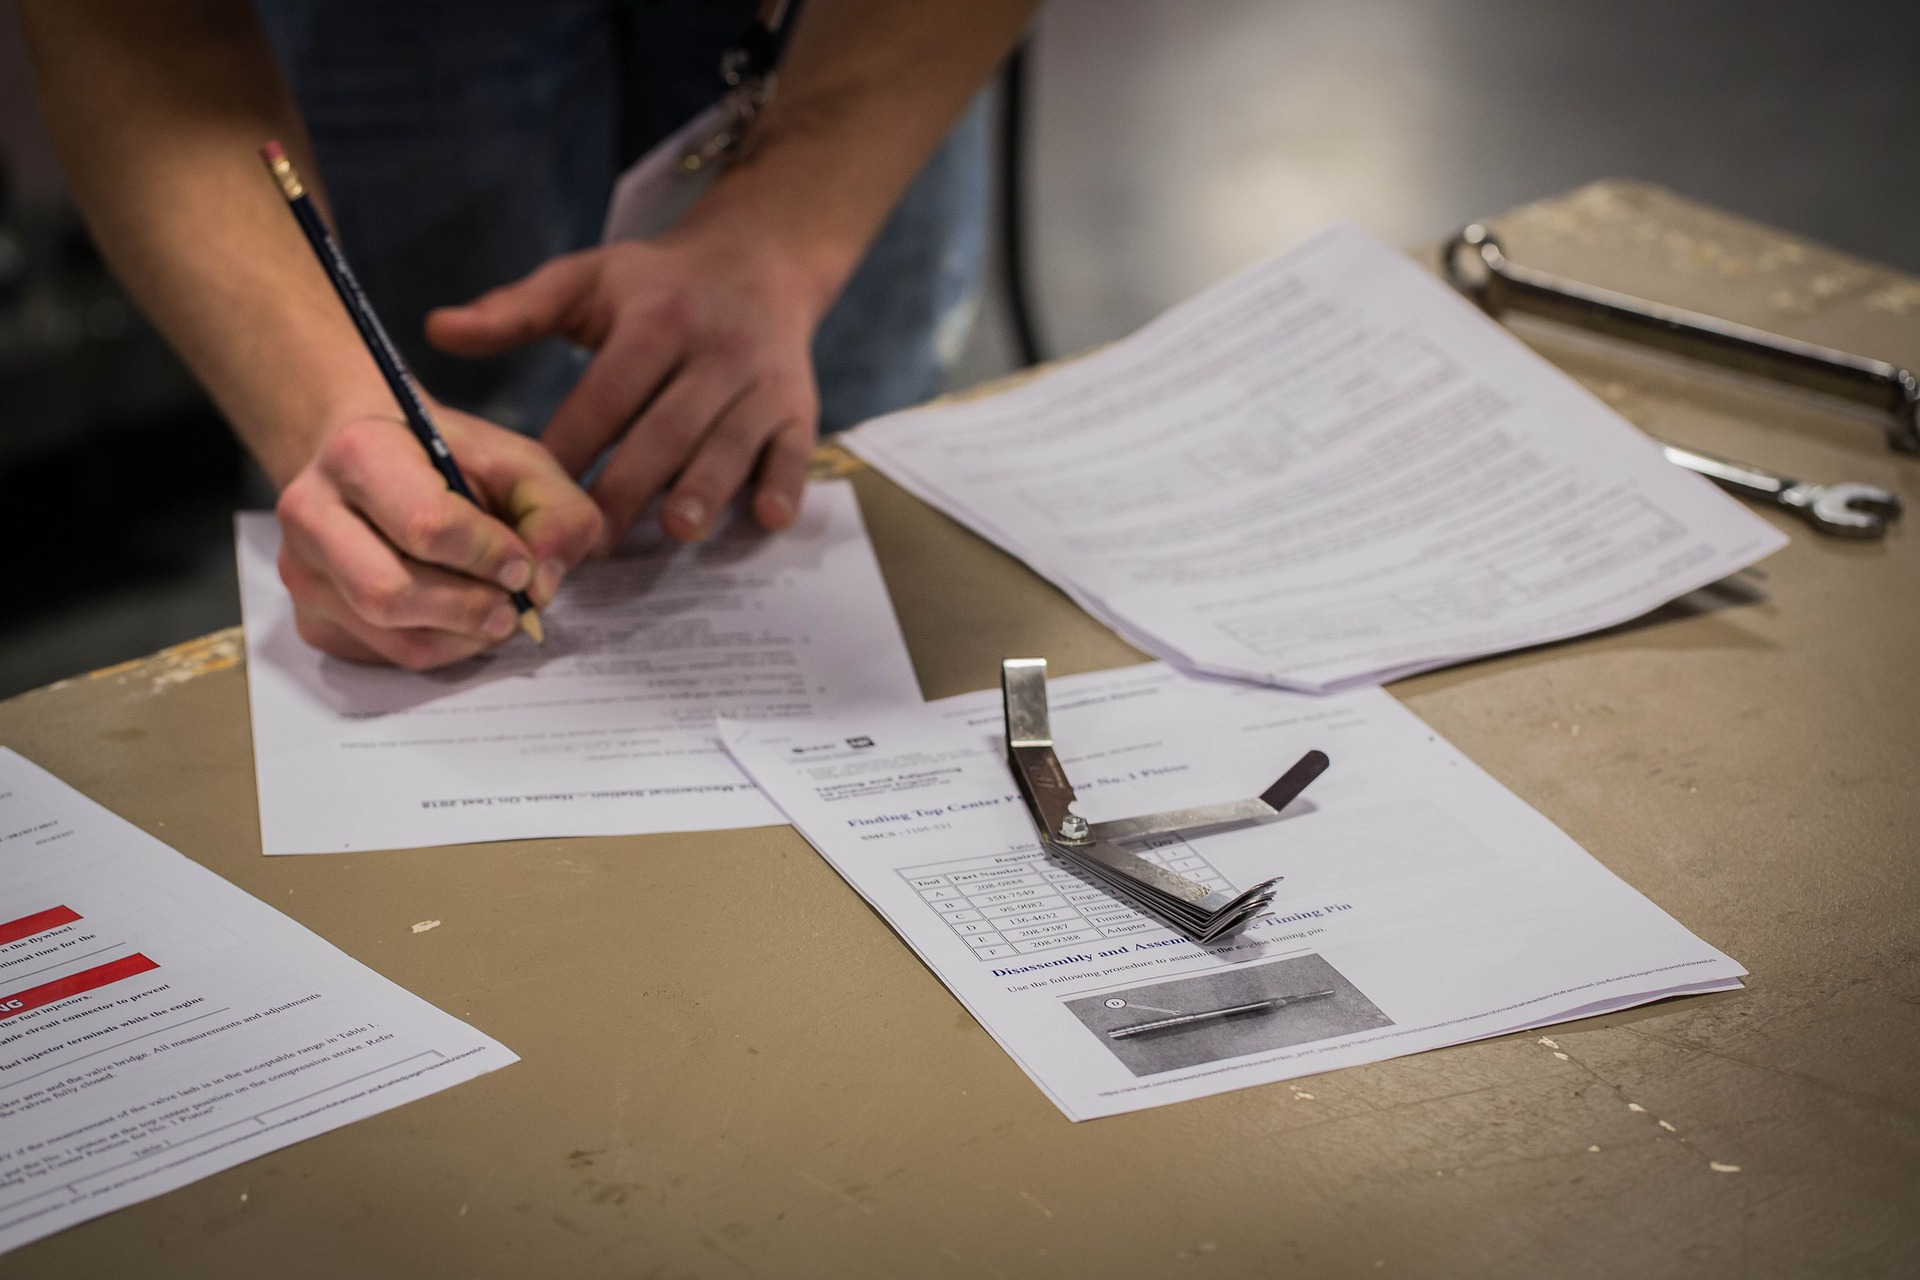 person writing on assessment papers on desk